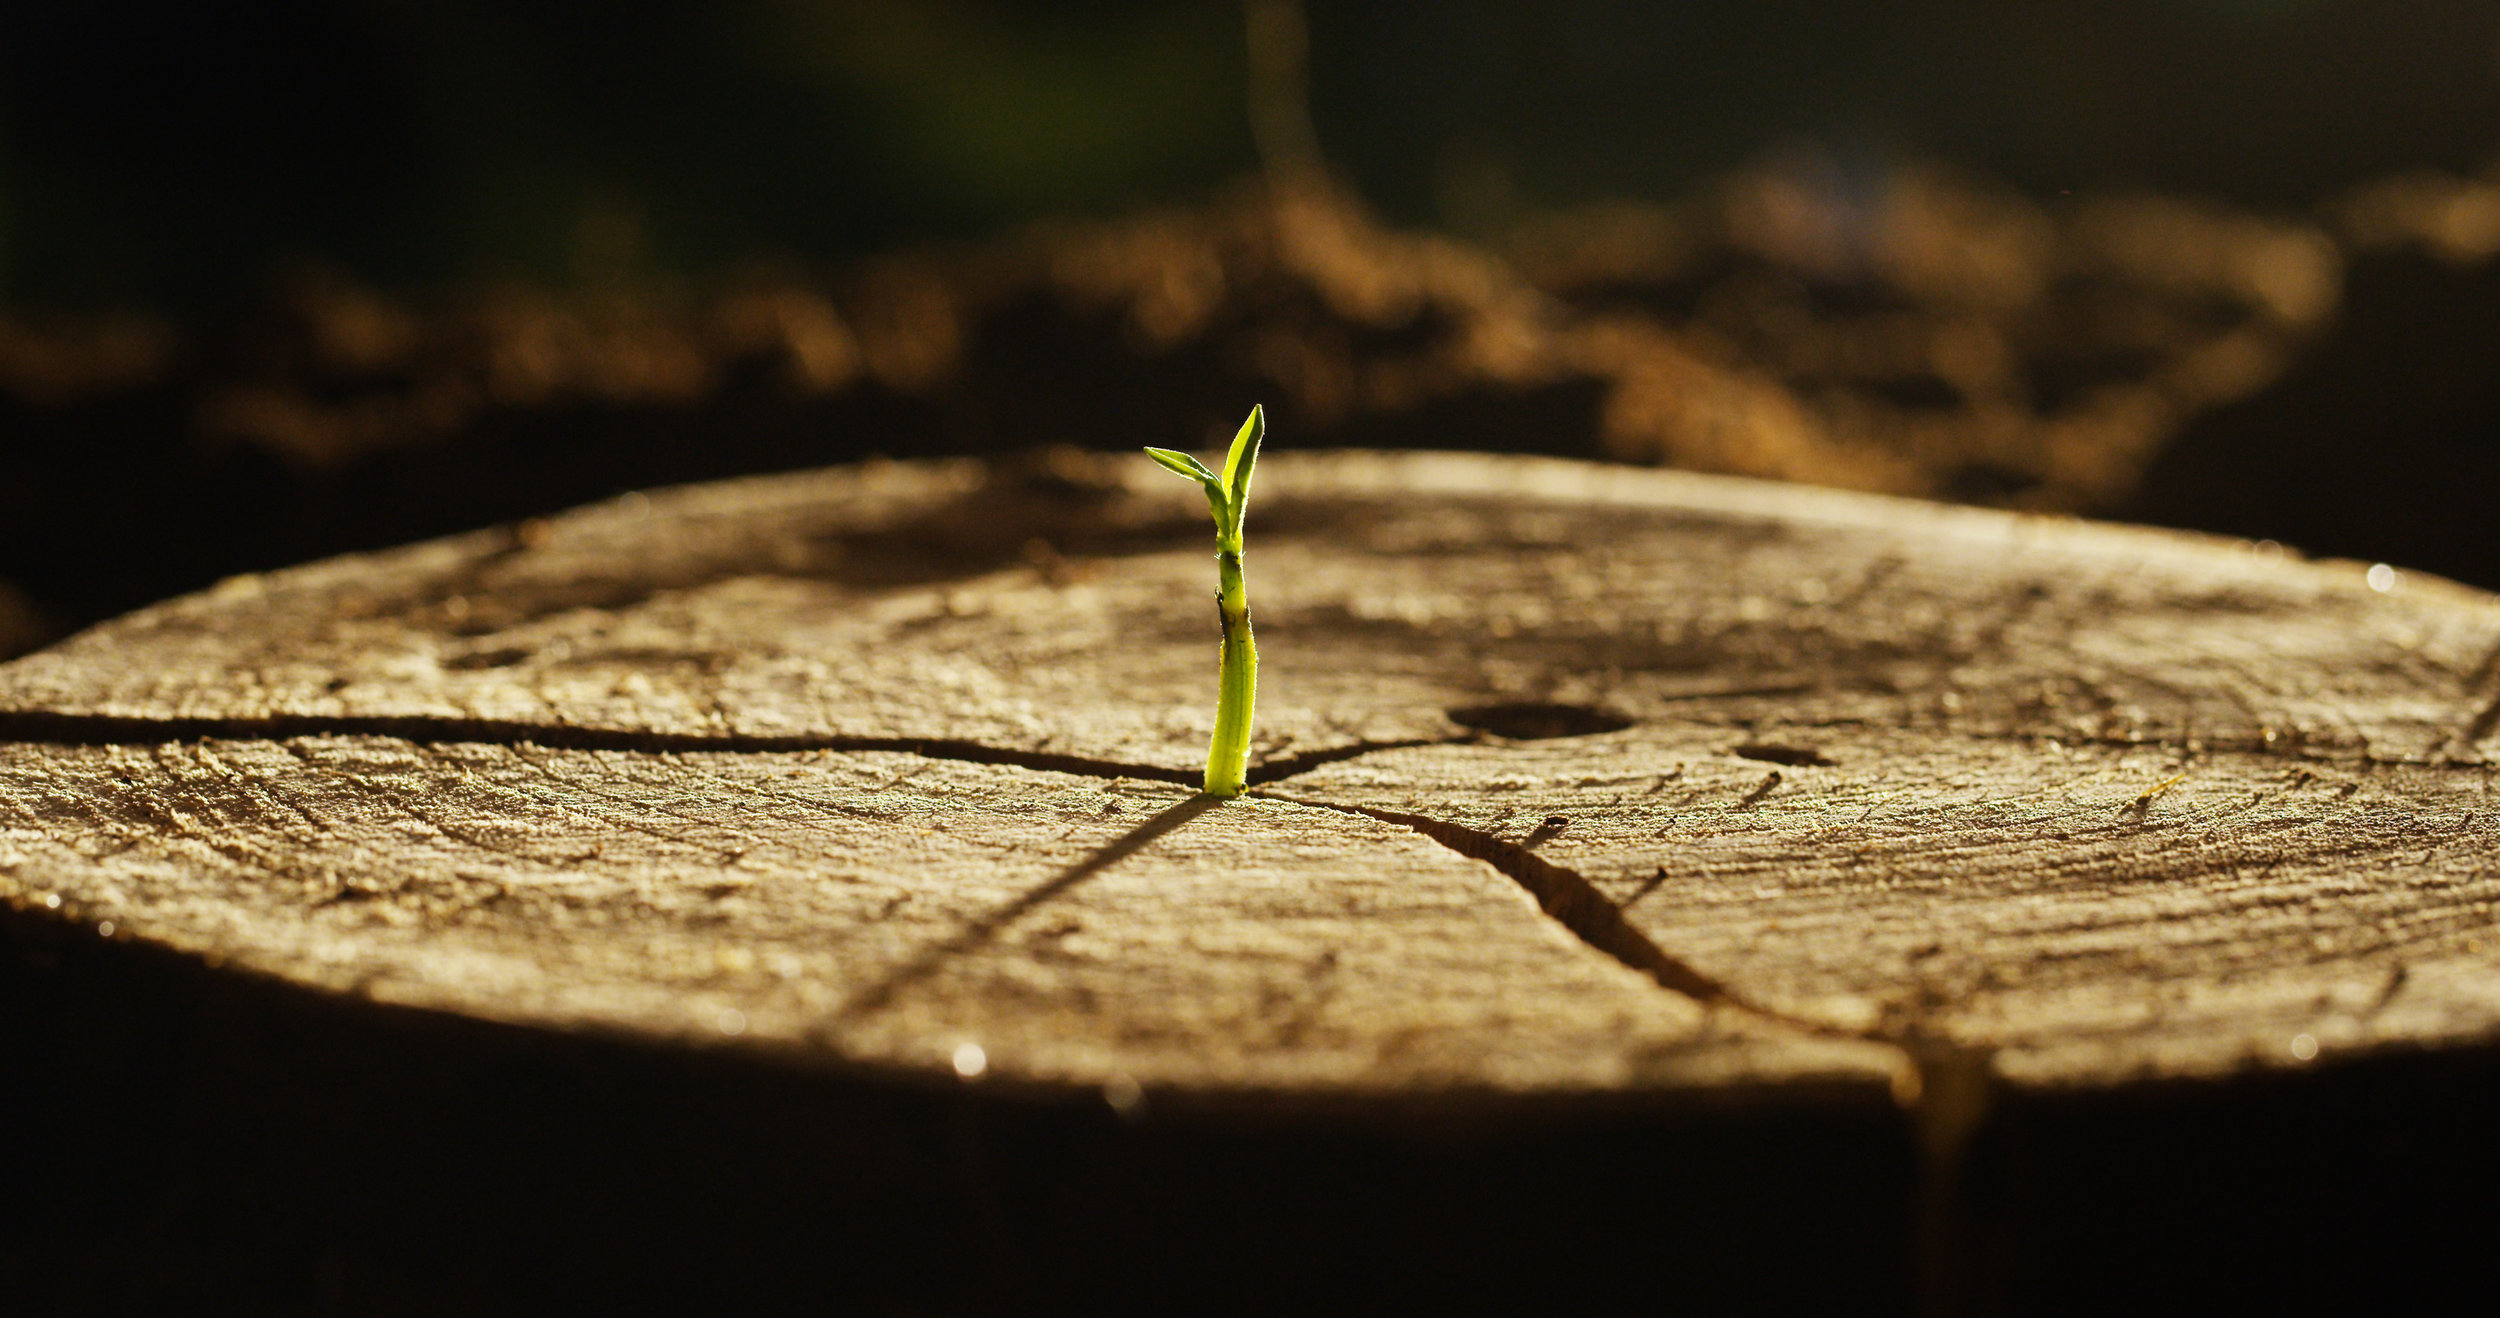 Ecological intelligence mentorship program - Finding Your Way Guided by the Living Earth